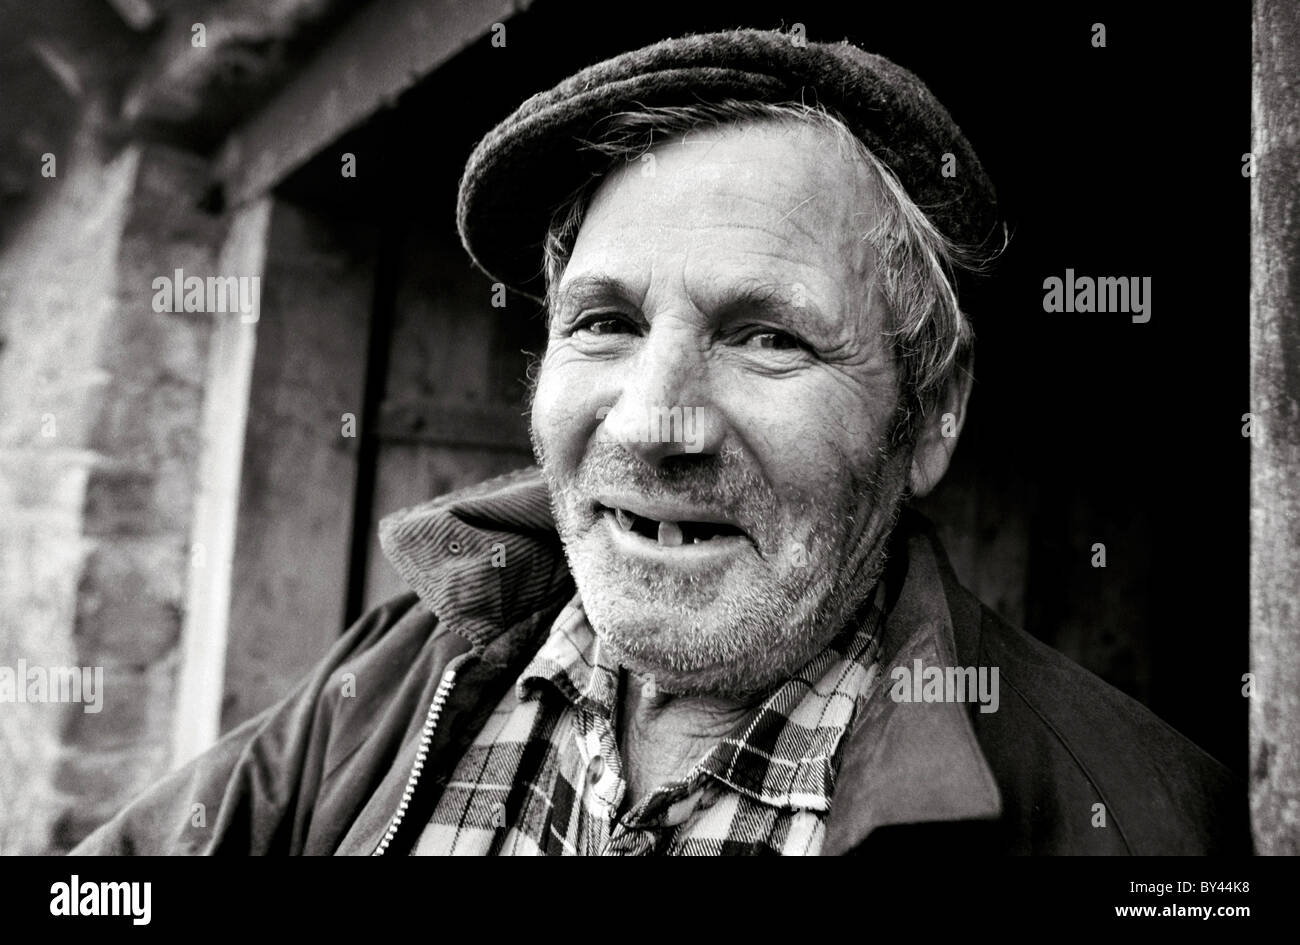 old farmer in flat cap smoking pipe Crymych sheep market Pembrokeshire  wales UK. A77BXP (RM). A Farmer in Mid Wales. - Stock Image 35dd397ac3ec